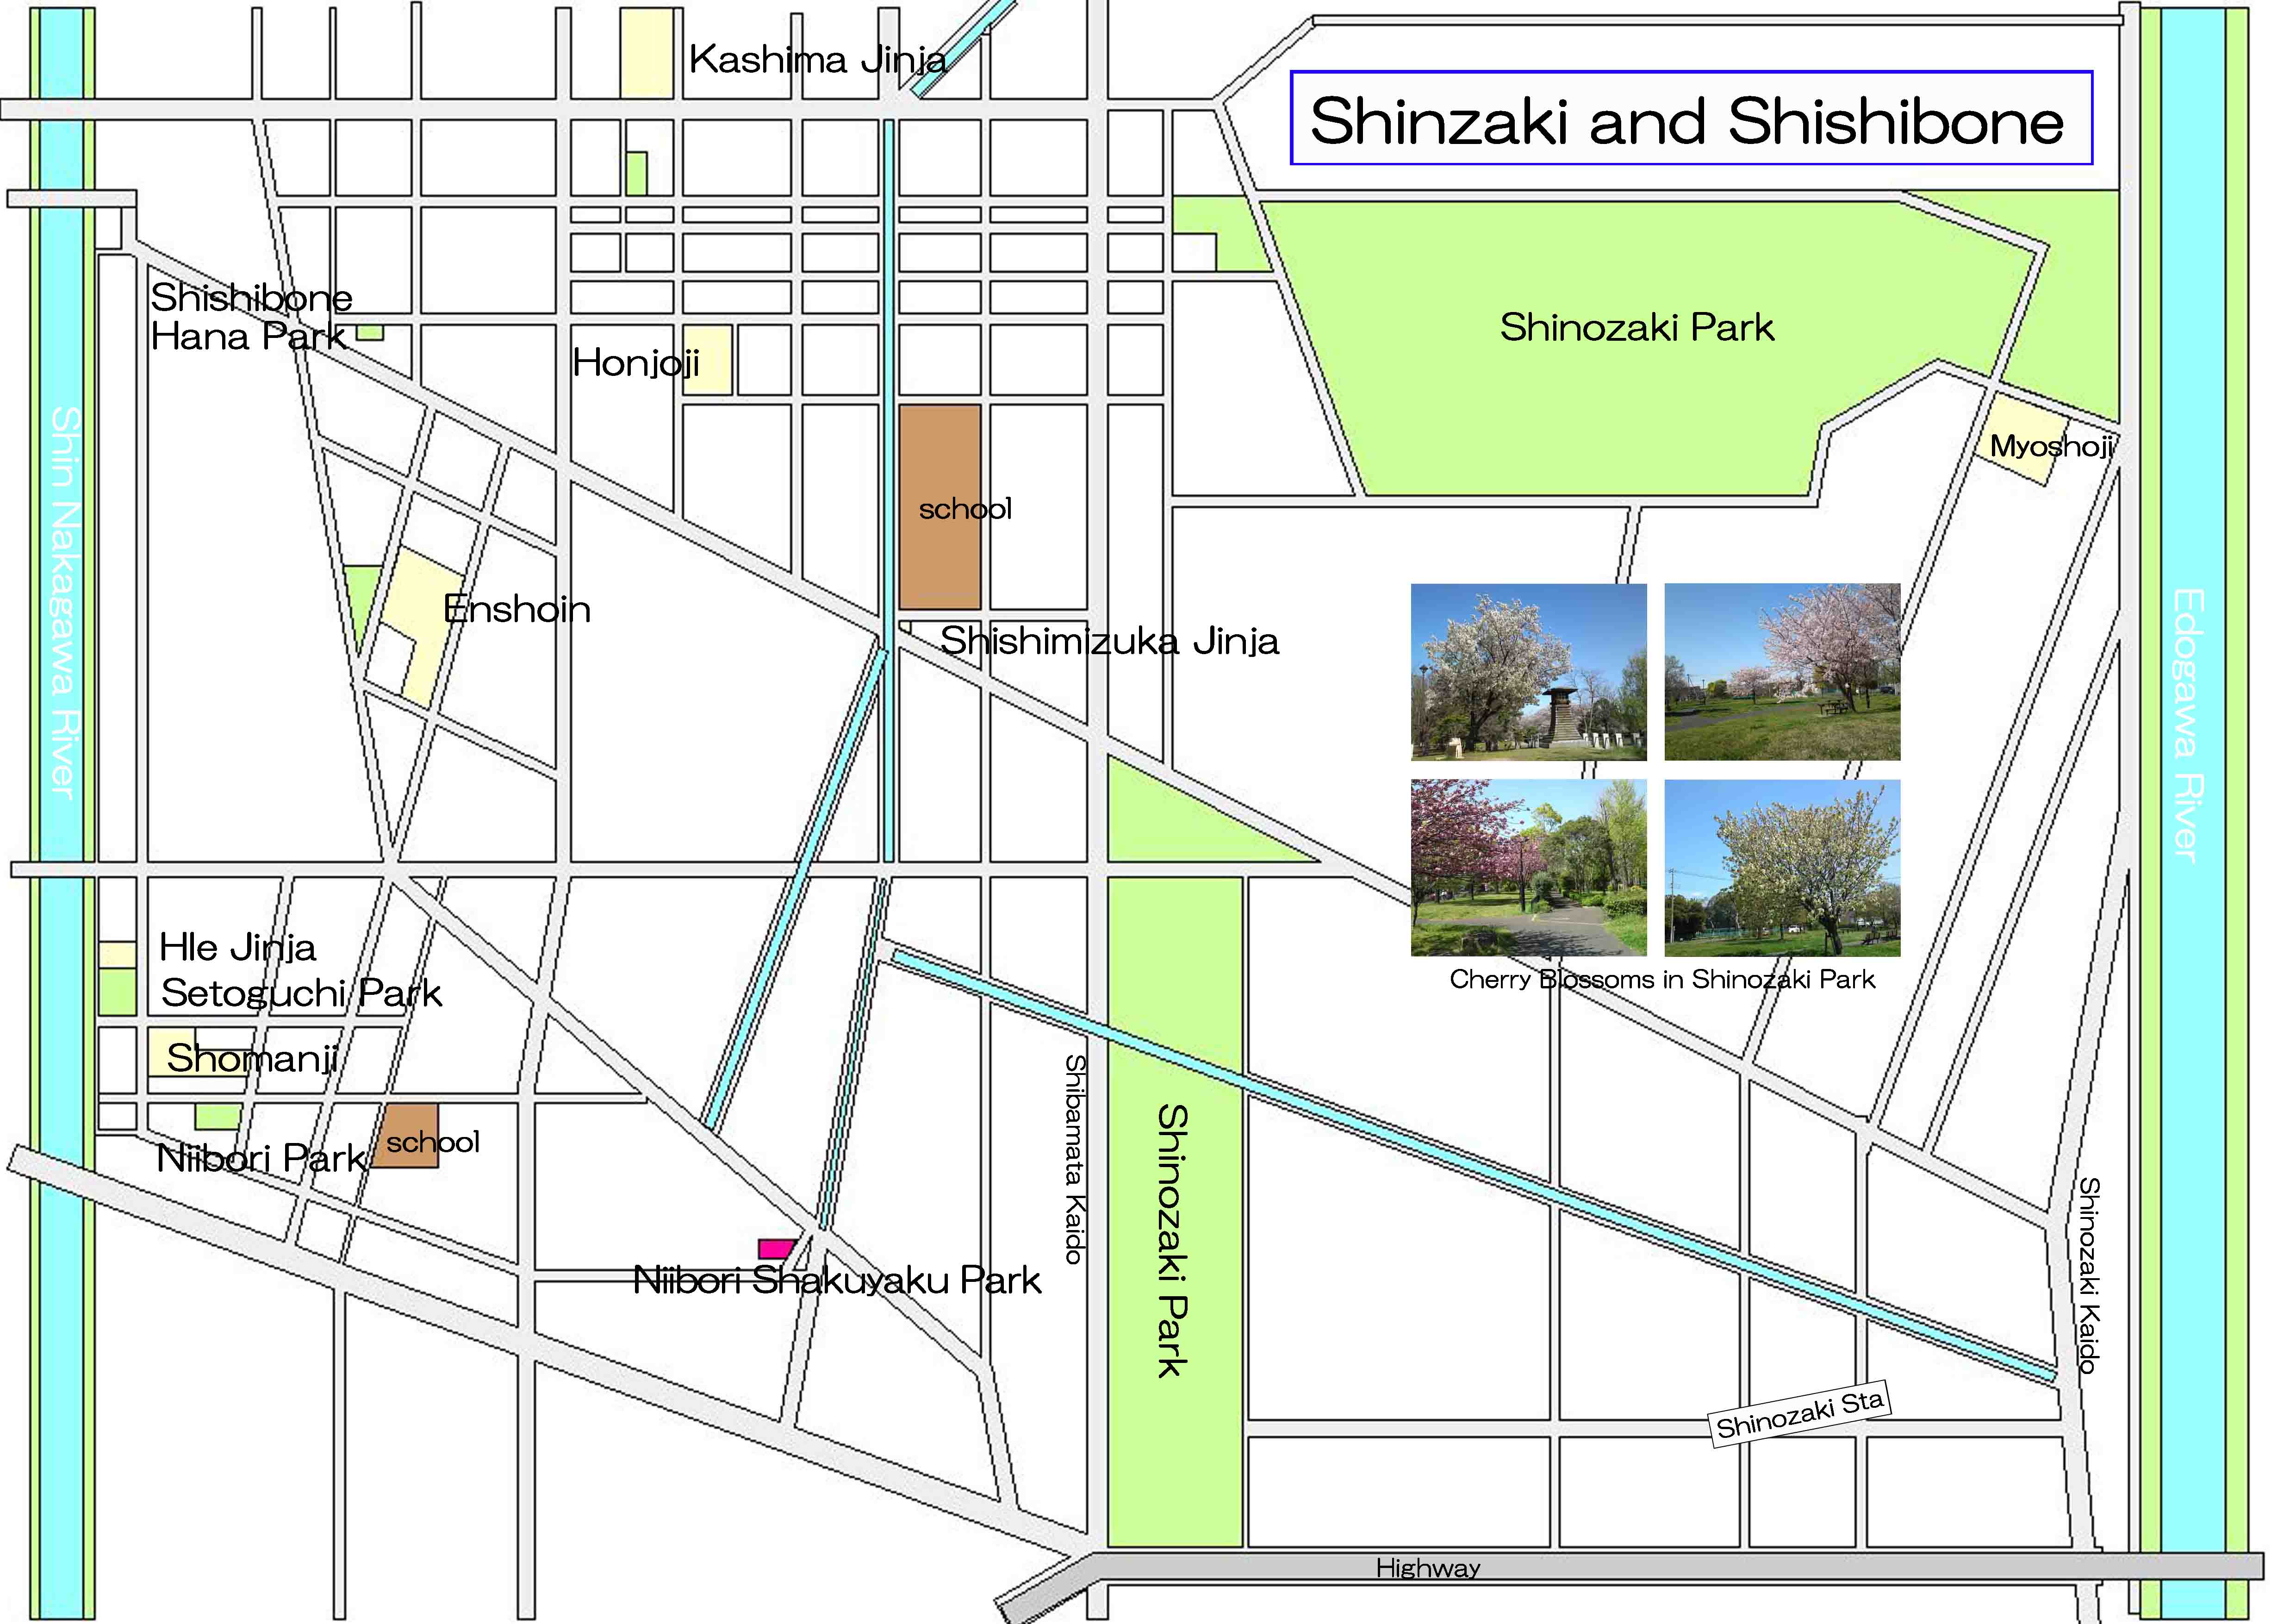 the map near Shinozaki Park